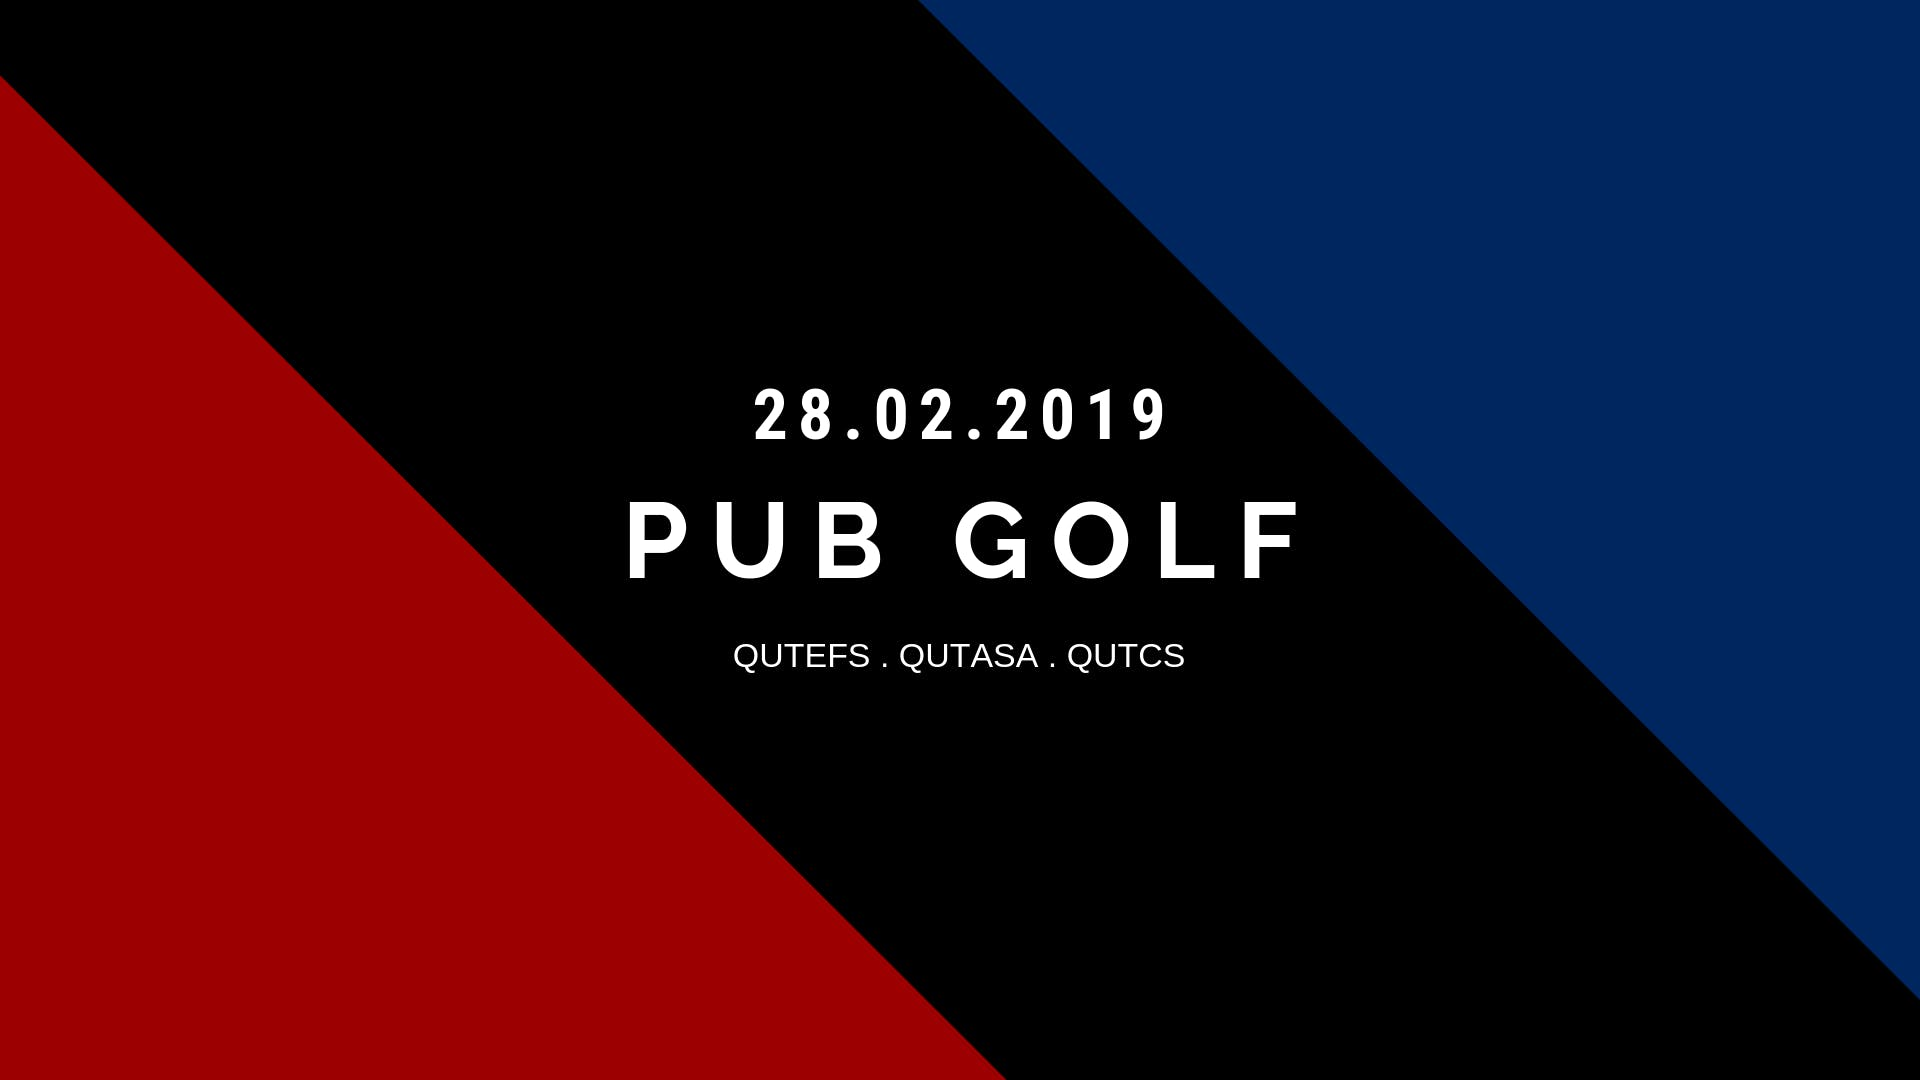 Red vs Blue vs Black Pub Golf